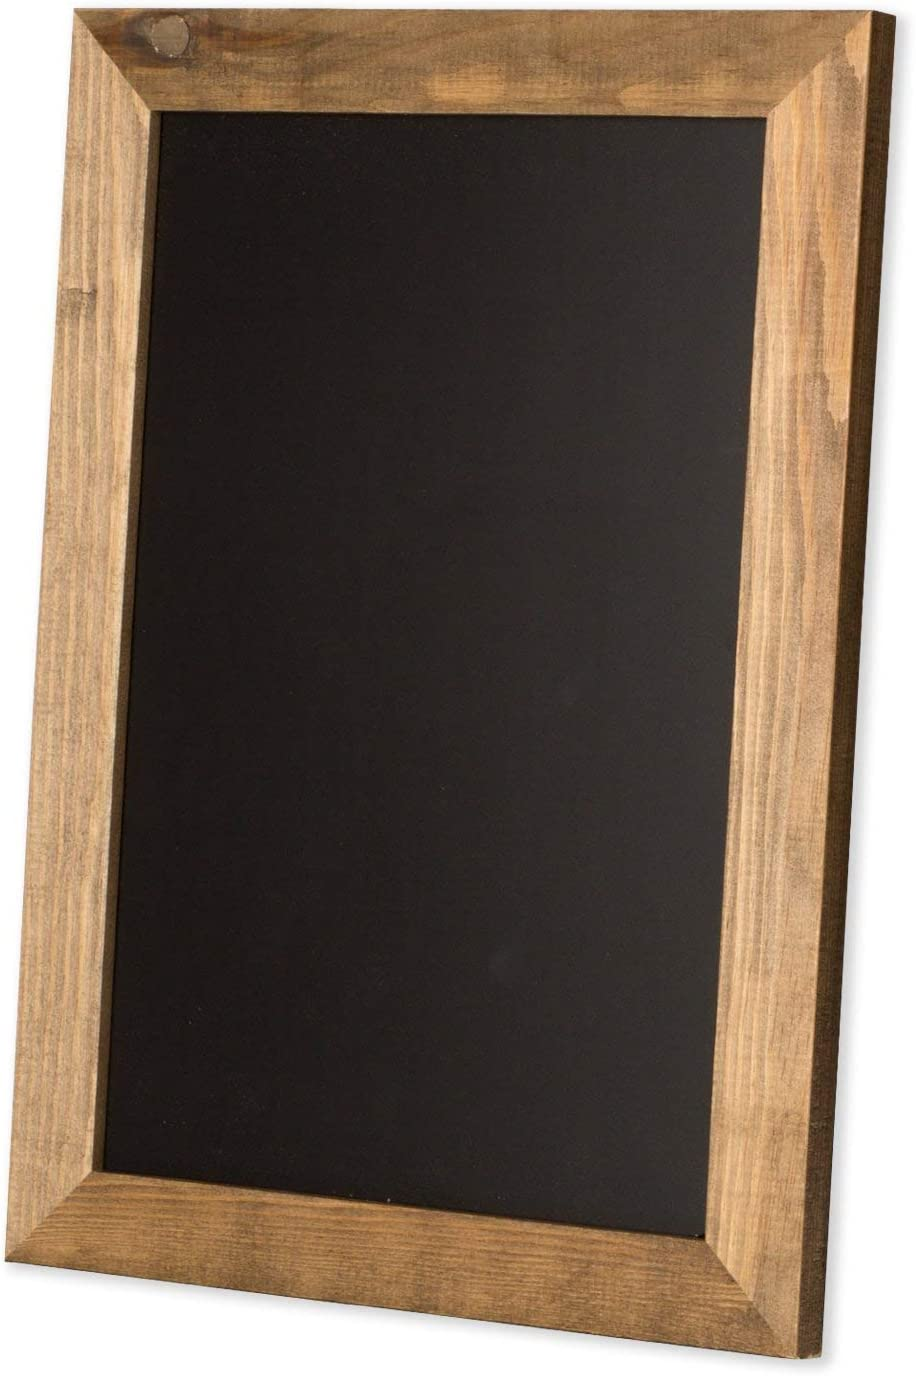 Amazon Com Rustic Wooden Magnetic Kitchen Chalkboard Sign 12x16 Inch Brown Framed Wall Hanging Chalk Board For Farmhouse Decor Wedding Restaurant Menu Home Office Products